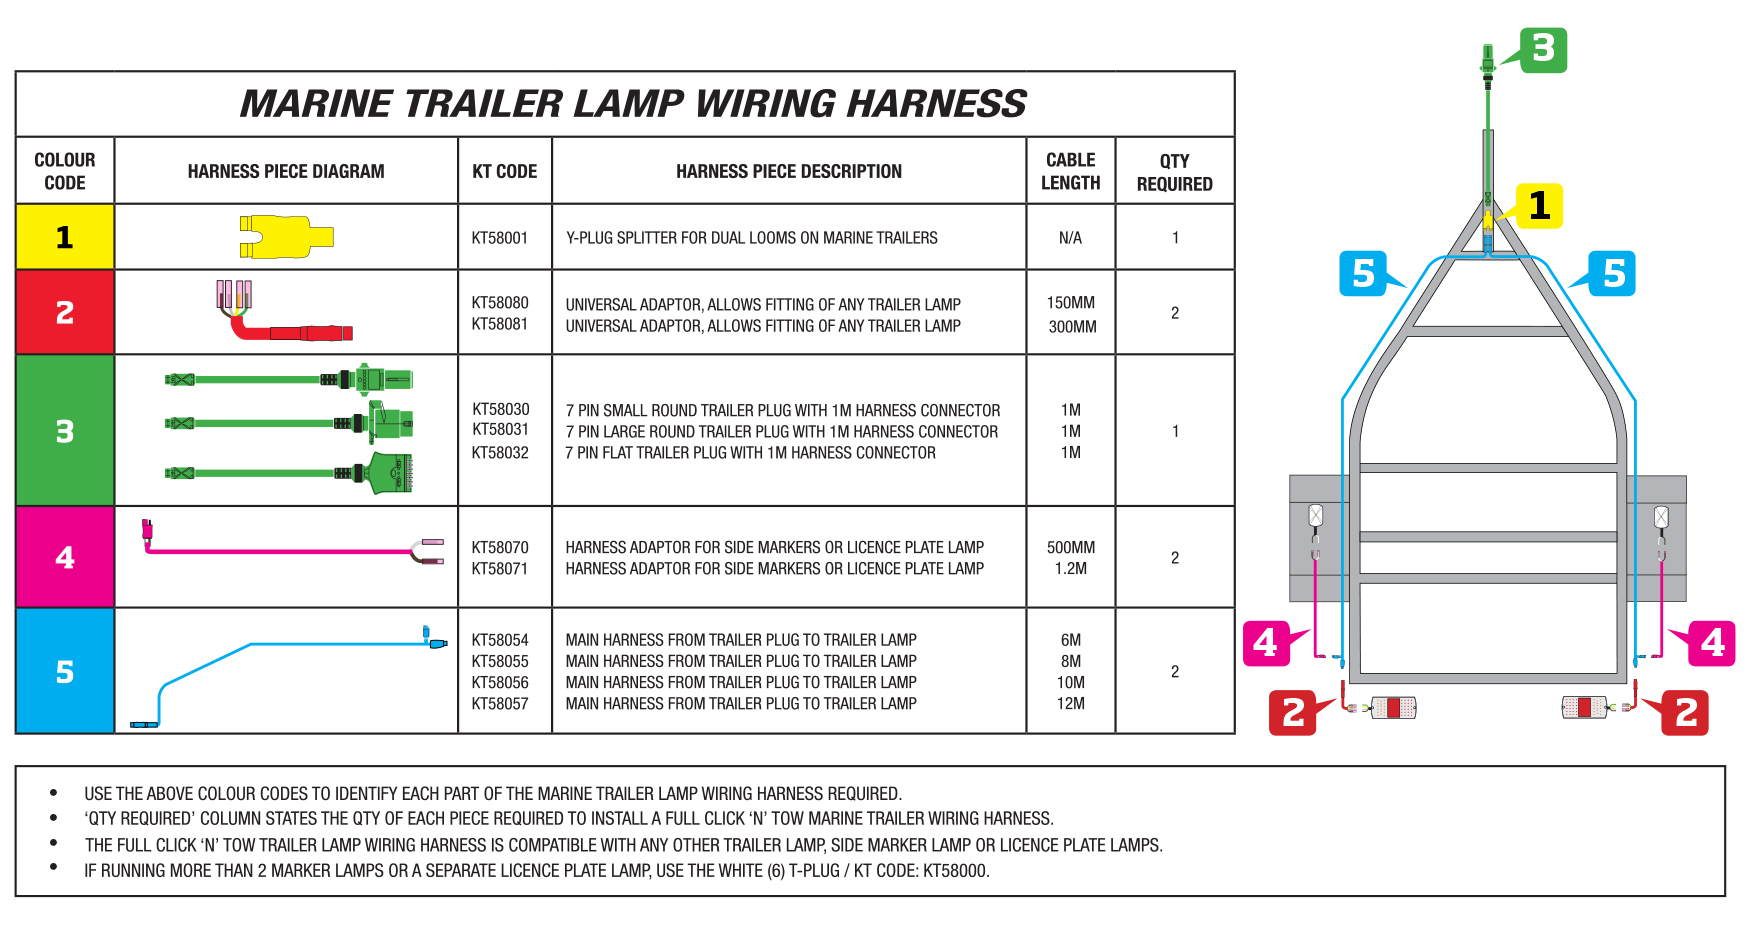 click n tow 148 5mm x 210mm print ready wiring diagram for multiple light fixtures make it with pallets tow ready trailer wiring diagram at edmiracle.co